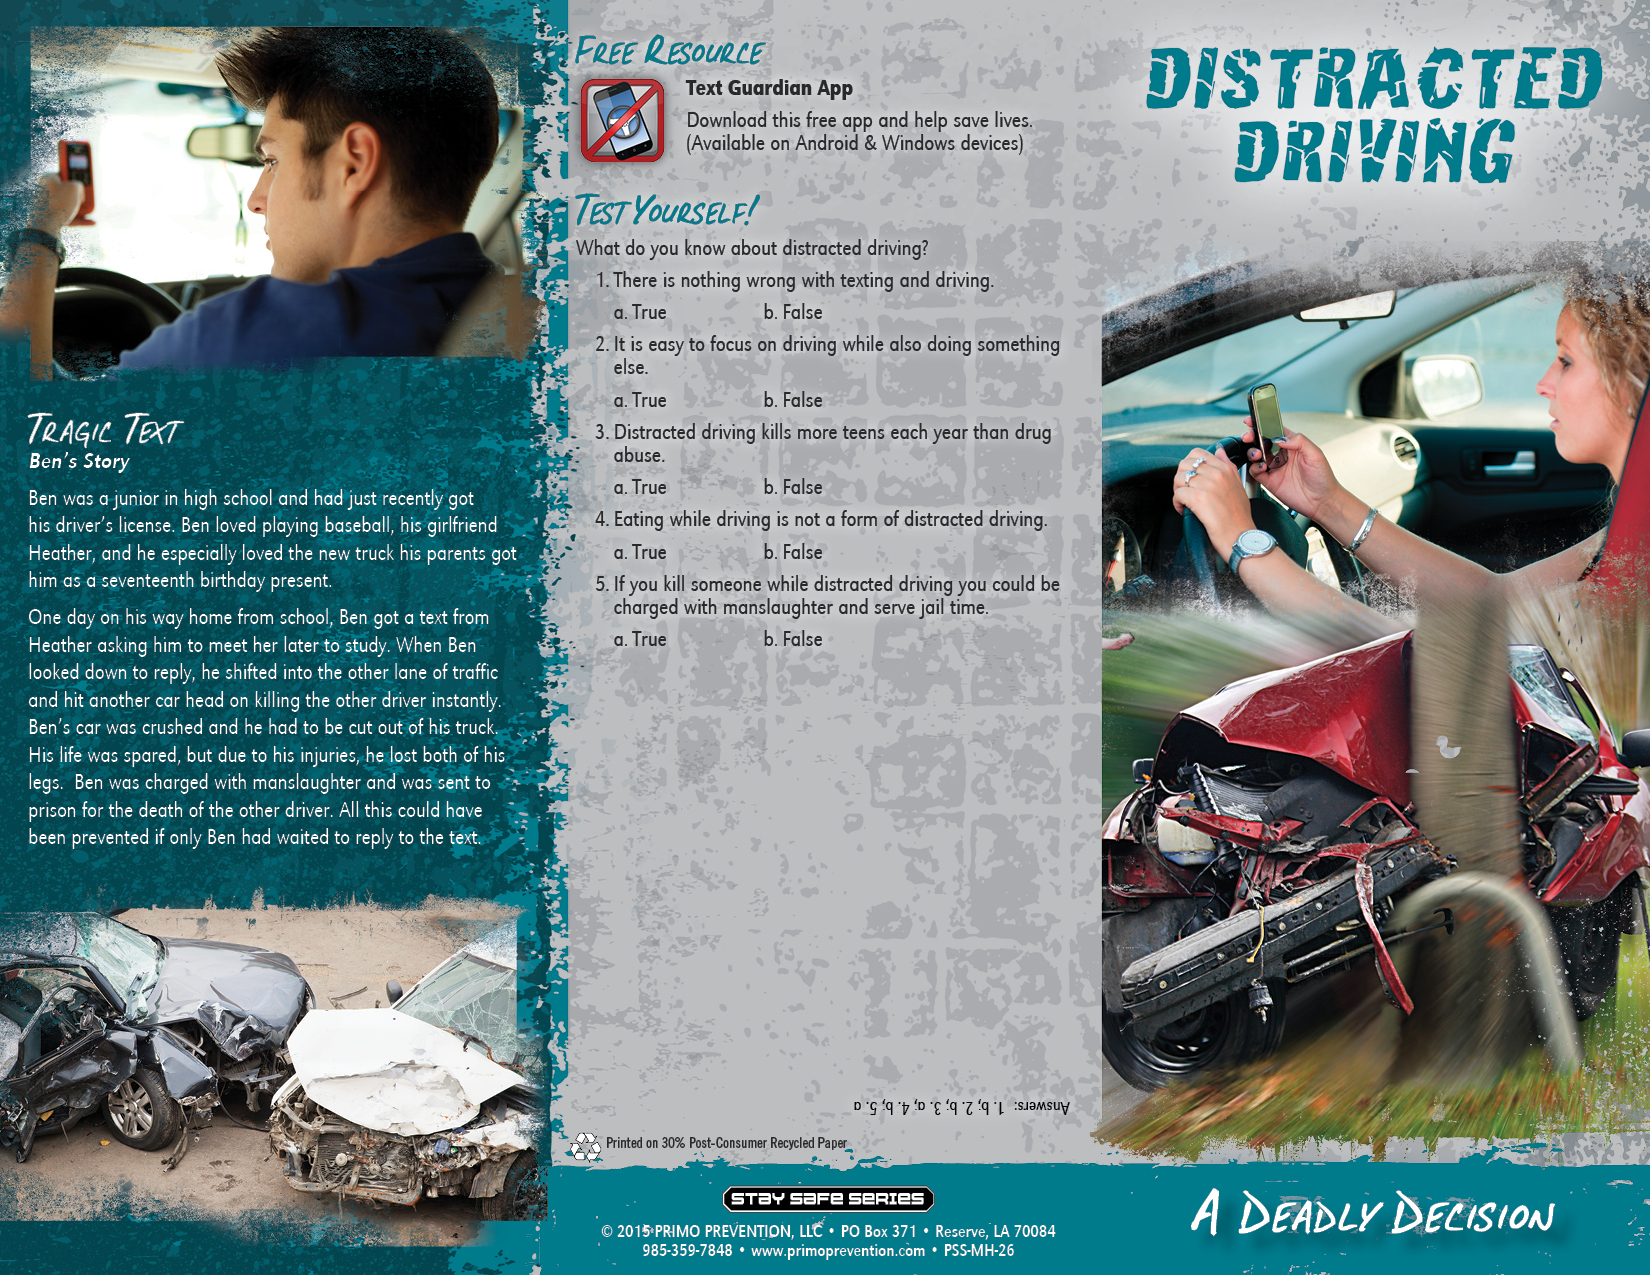 distracted driving argument paper Distracted driving argument paper abstract advancing technology in wireless communications is presenting a growing concern for distracted driving due to using cell phones and other electronic devices while driving.